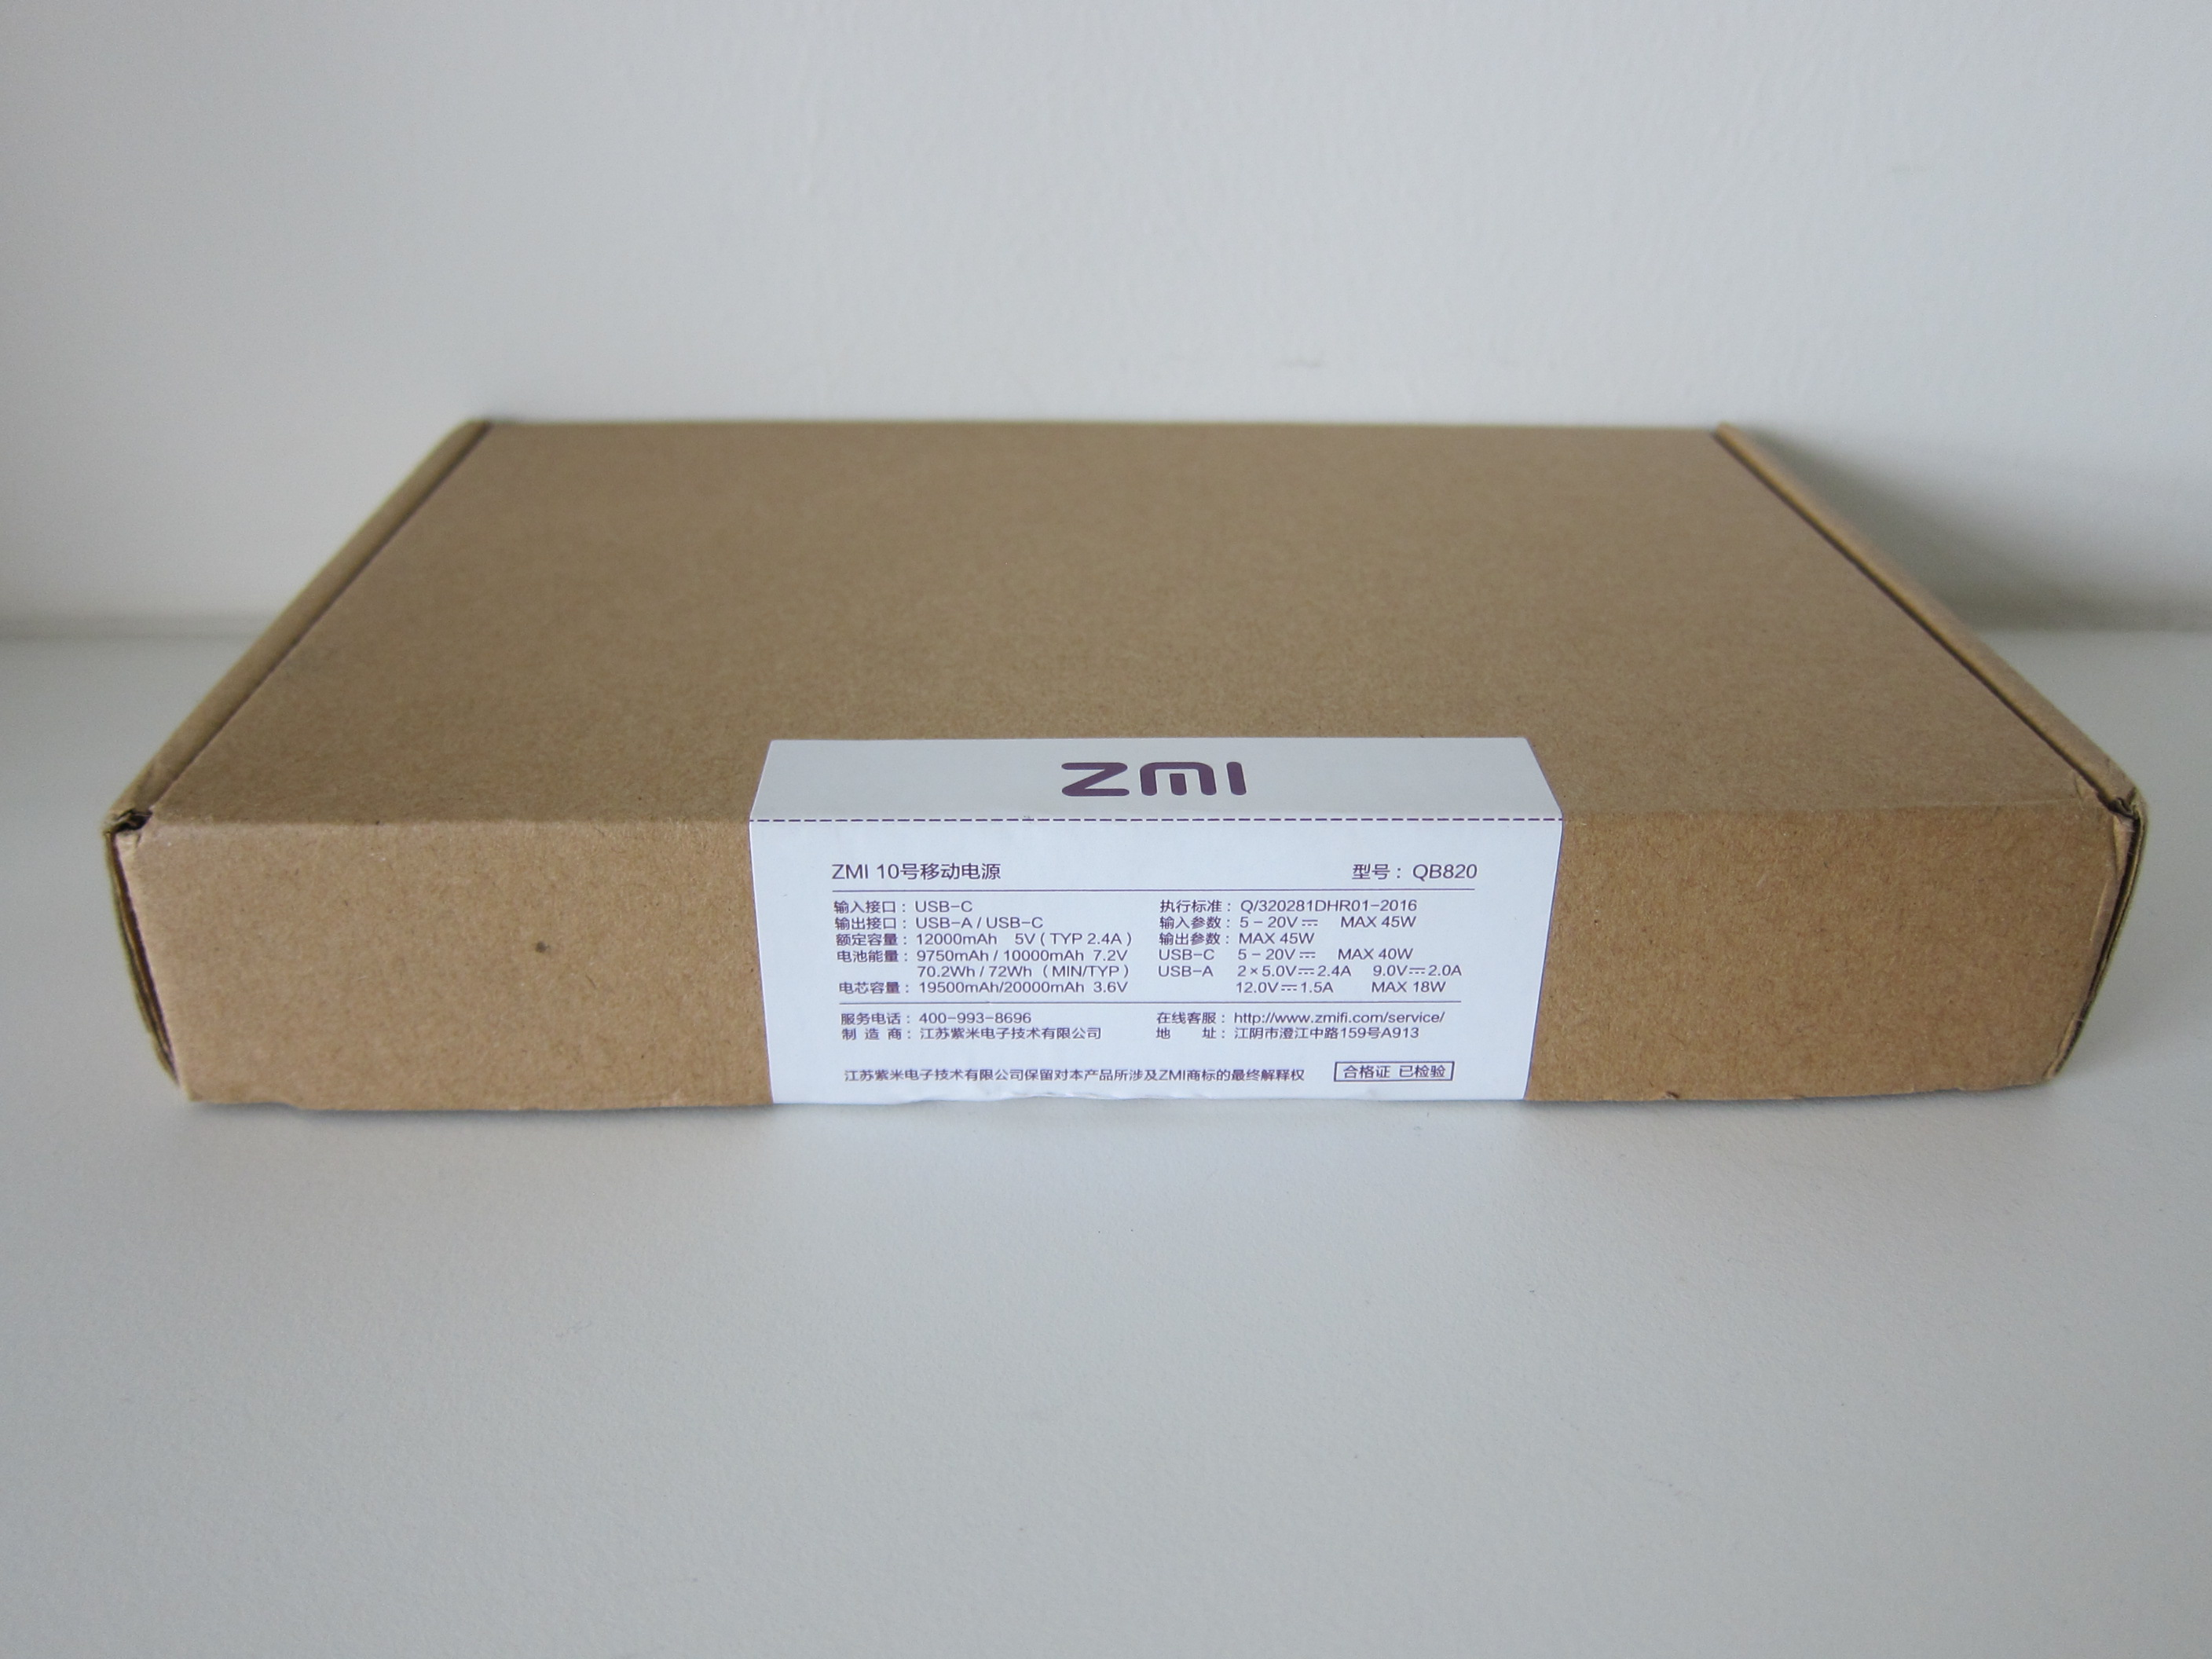 Xiaomi ZMI QB820 20 000mAh Power Bank Outer Box